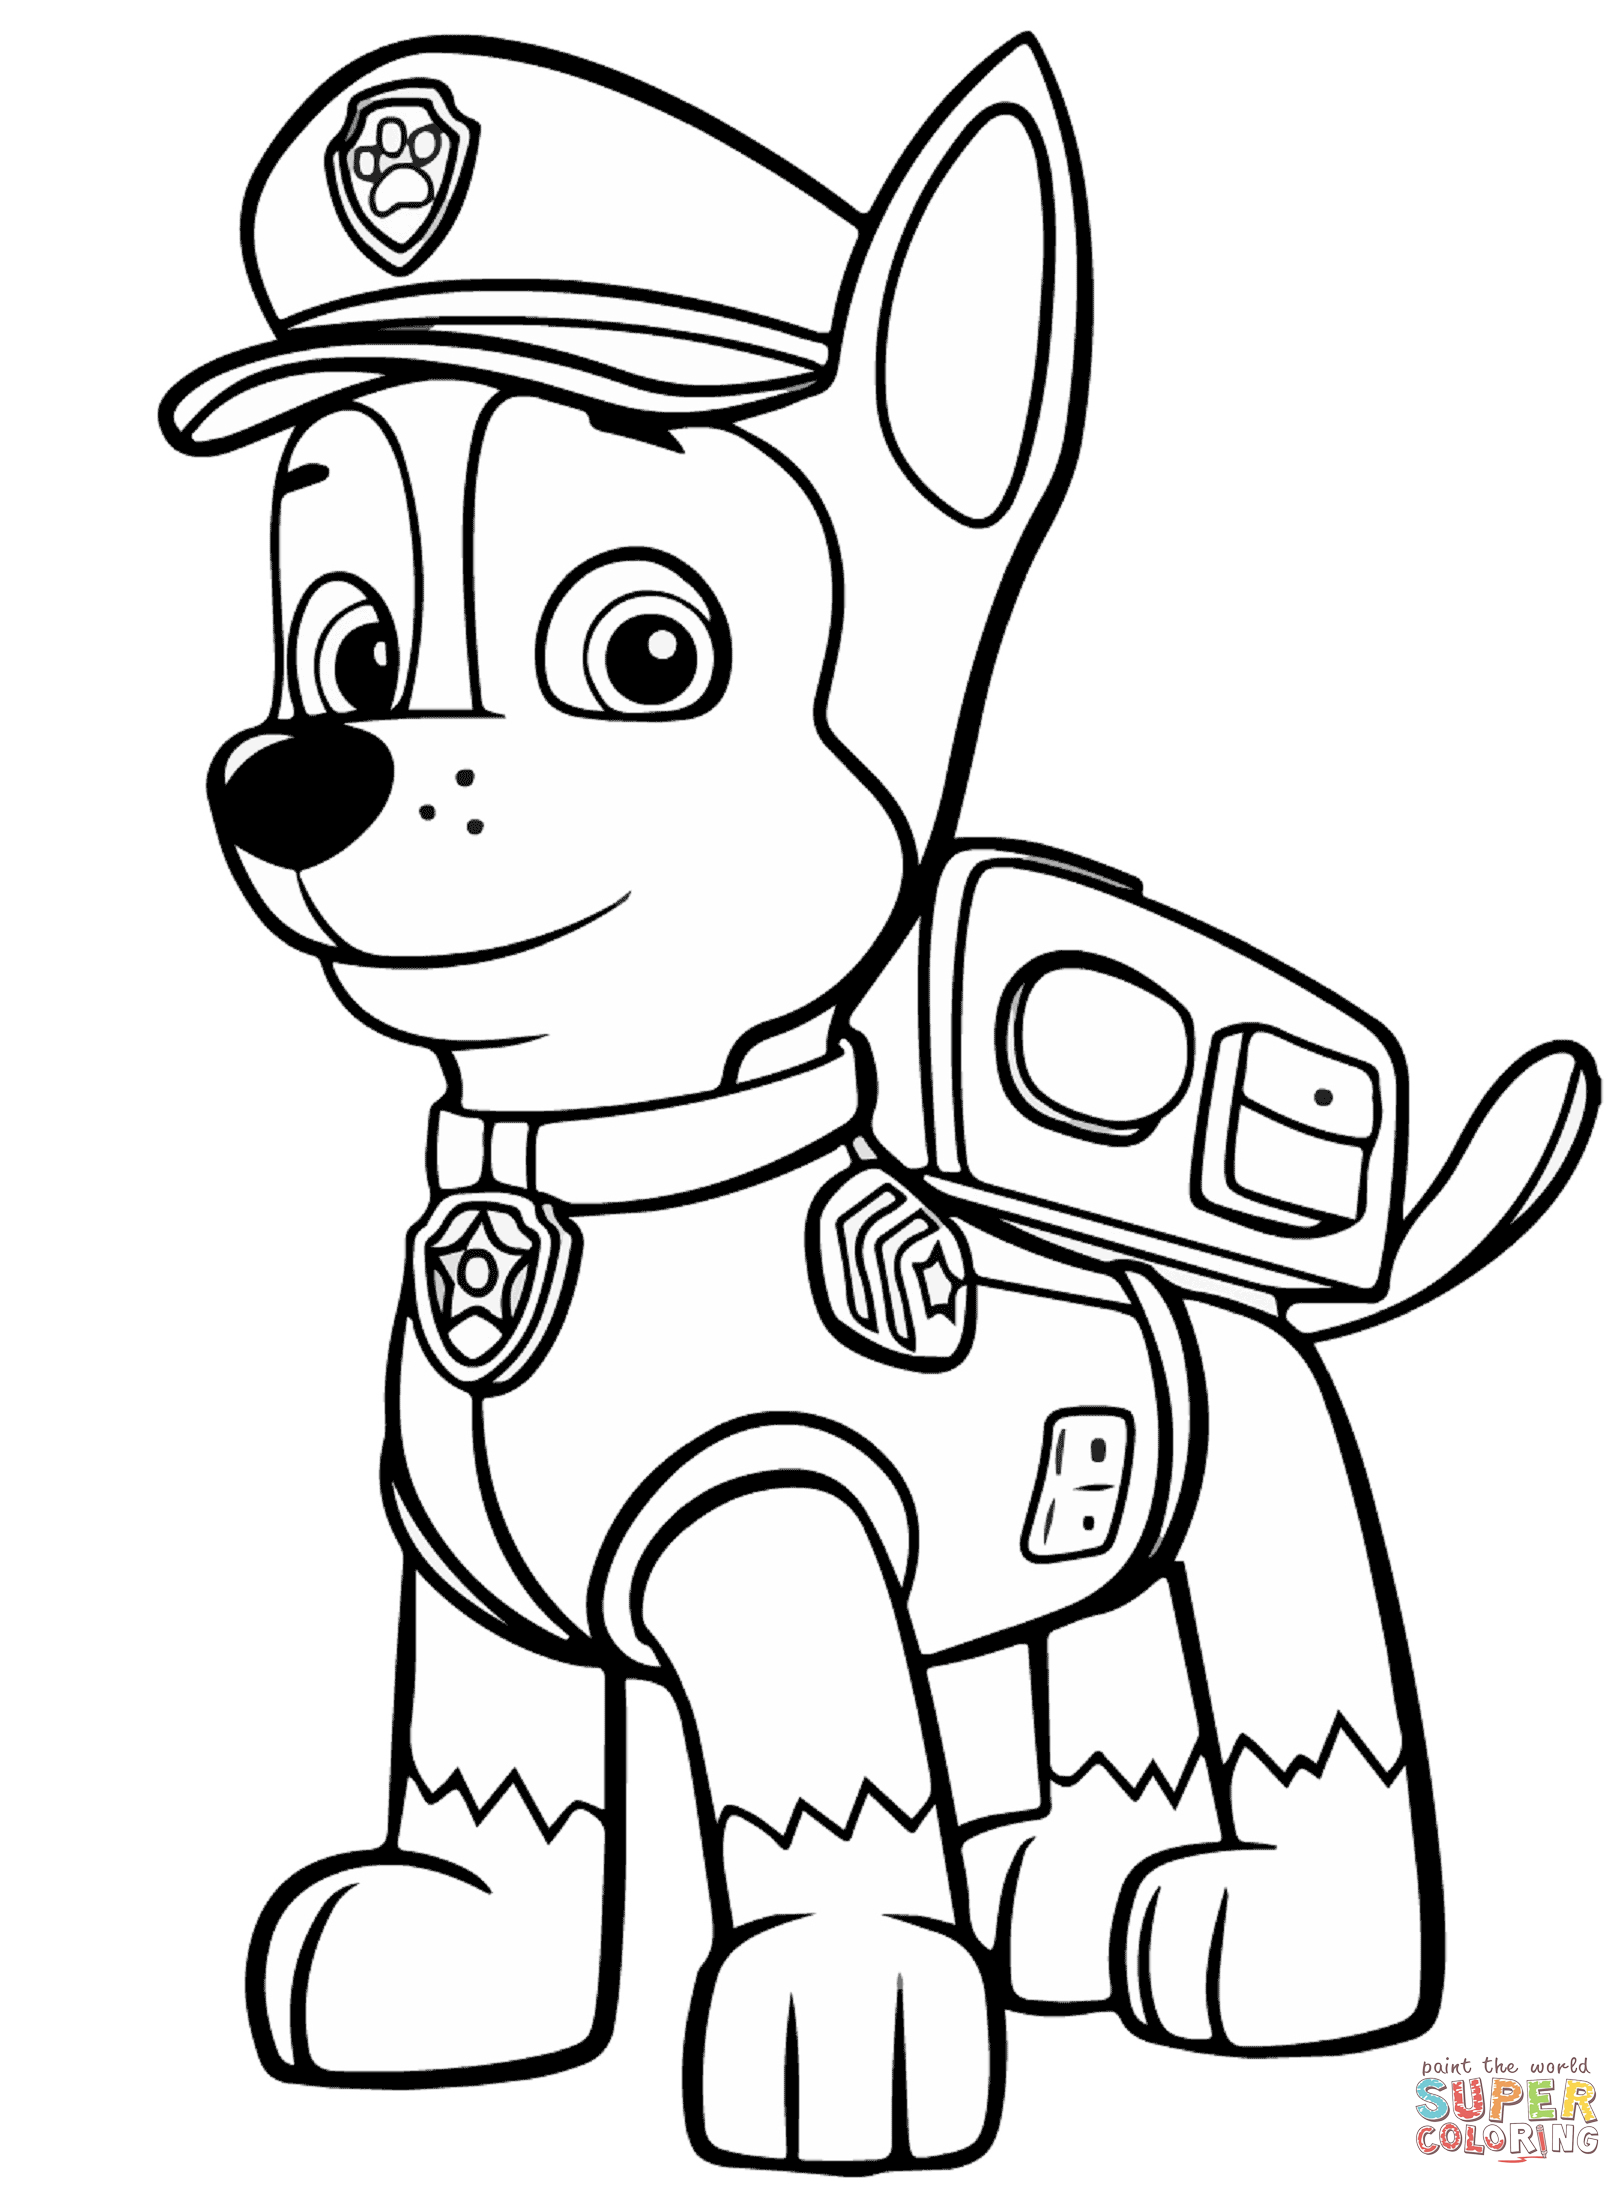 Paw patrol coloring outline